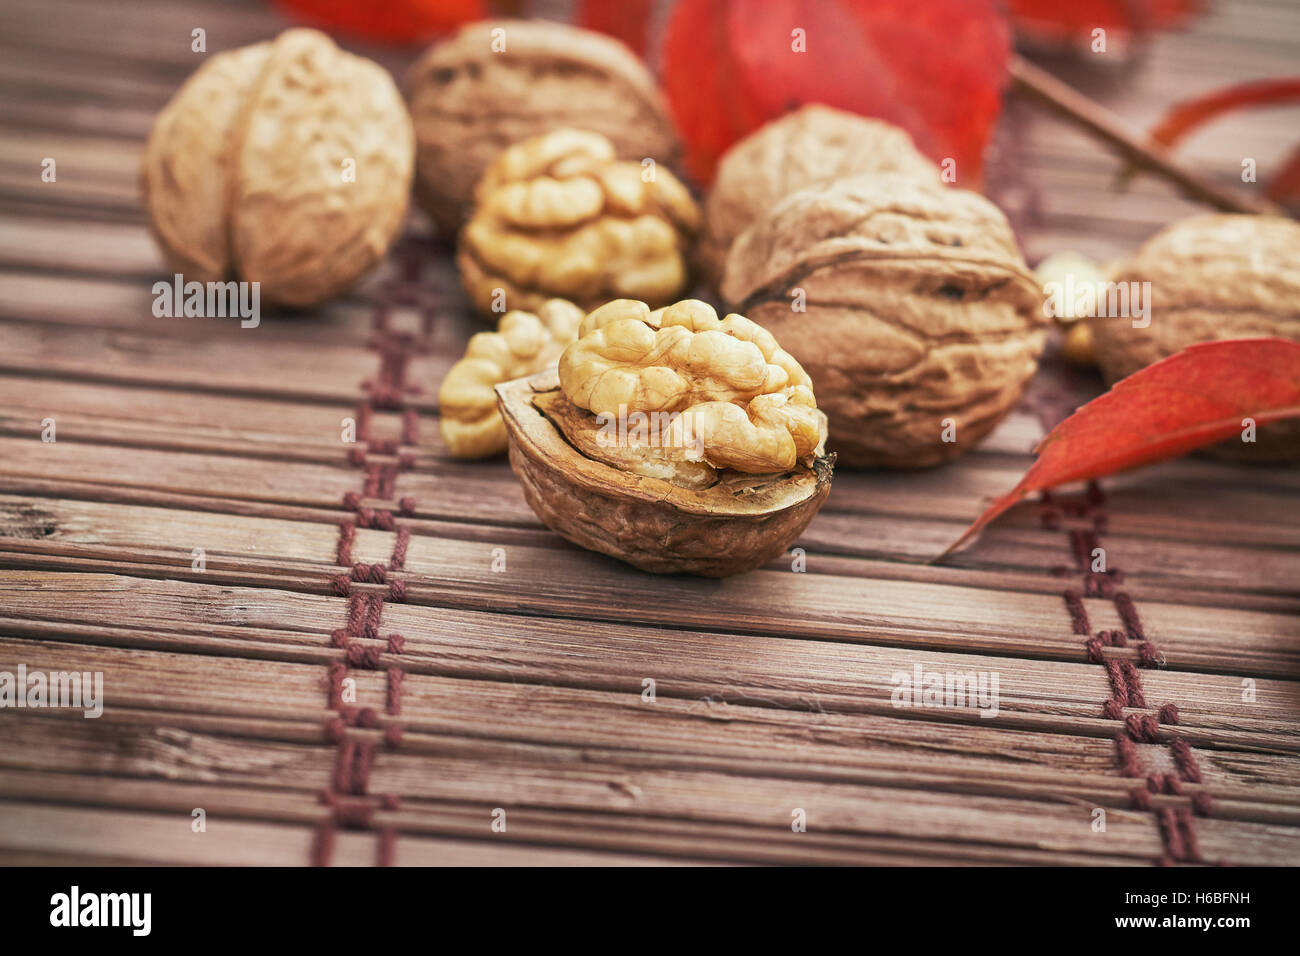 Walnuts on wooden background with copy space - Stock Image